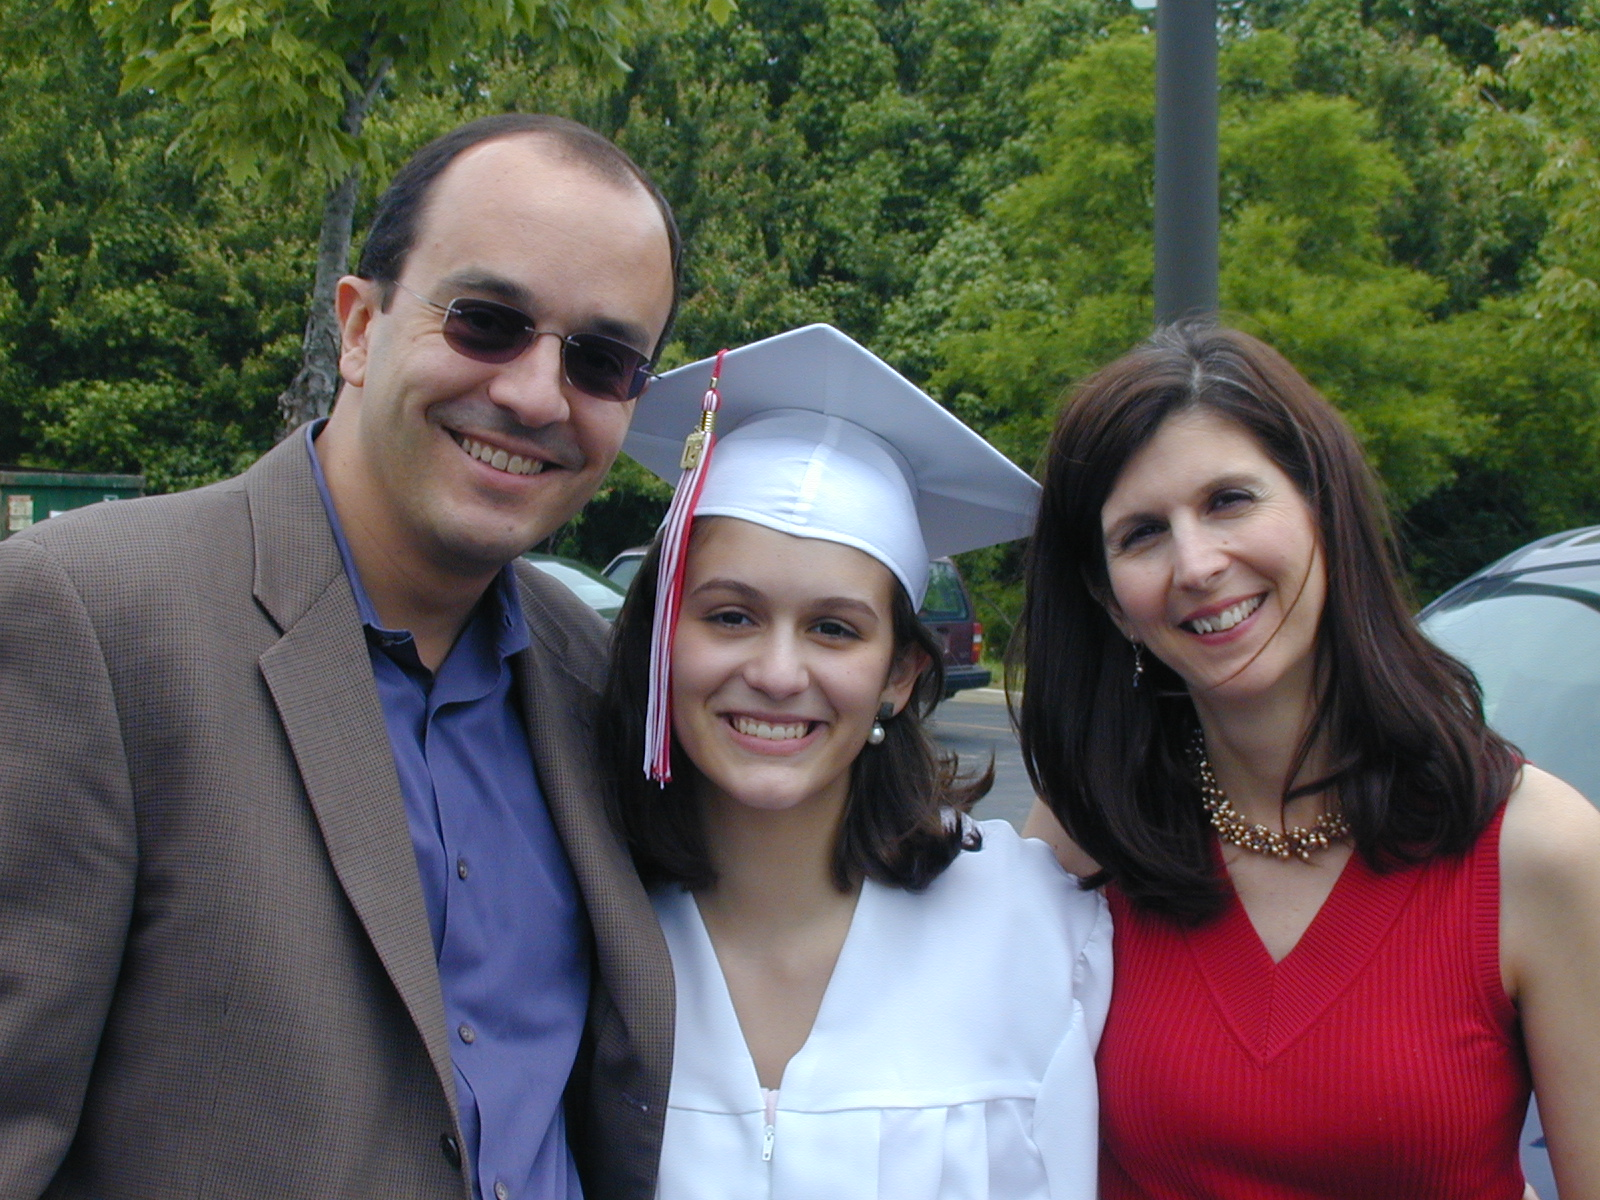 High school graduation: my father, me, and my mother.